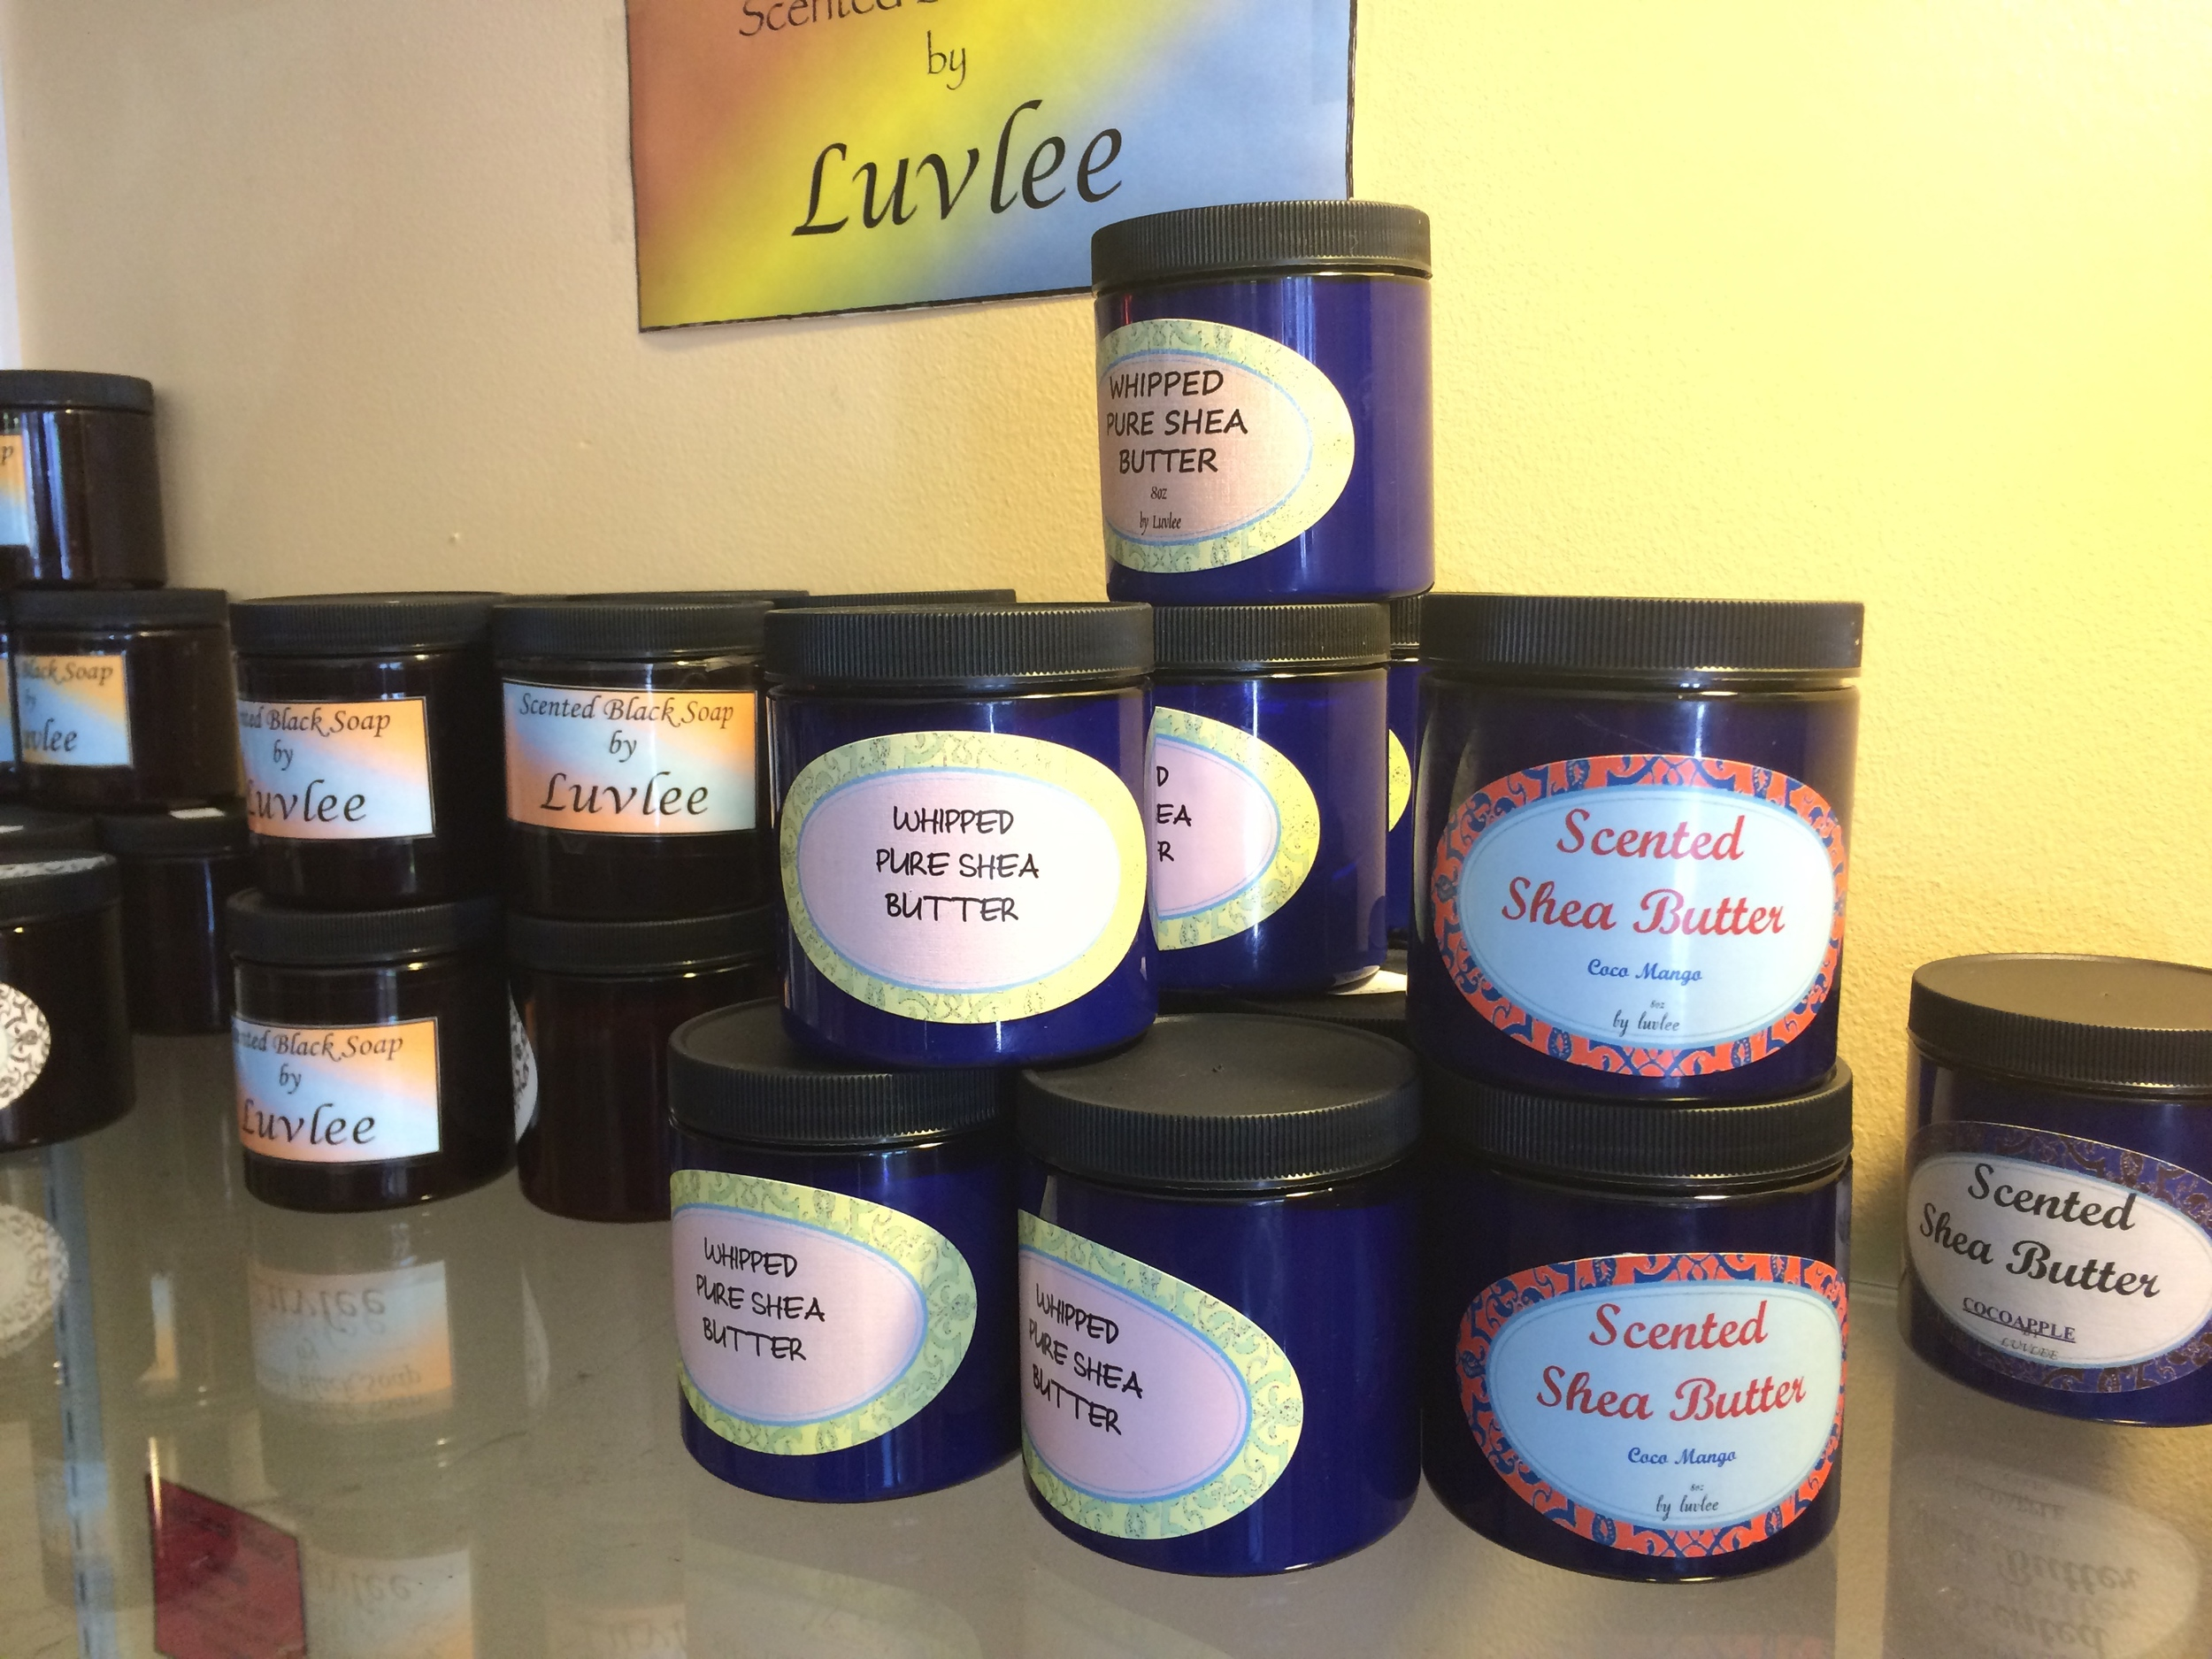 Black soap and scented shea butter by Luvlee